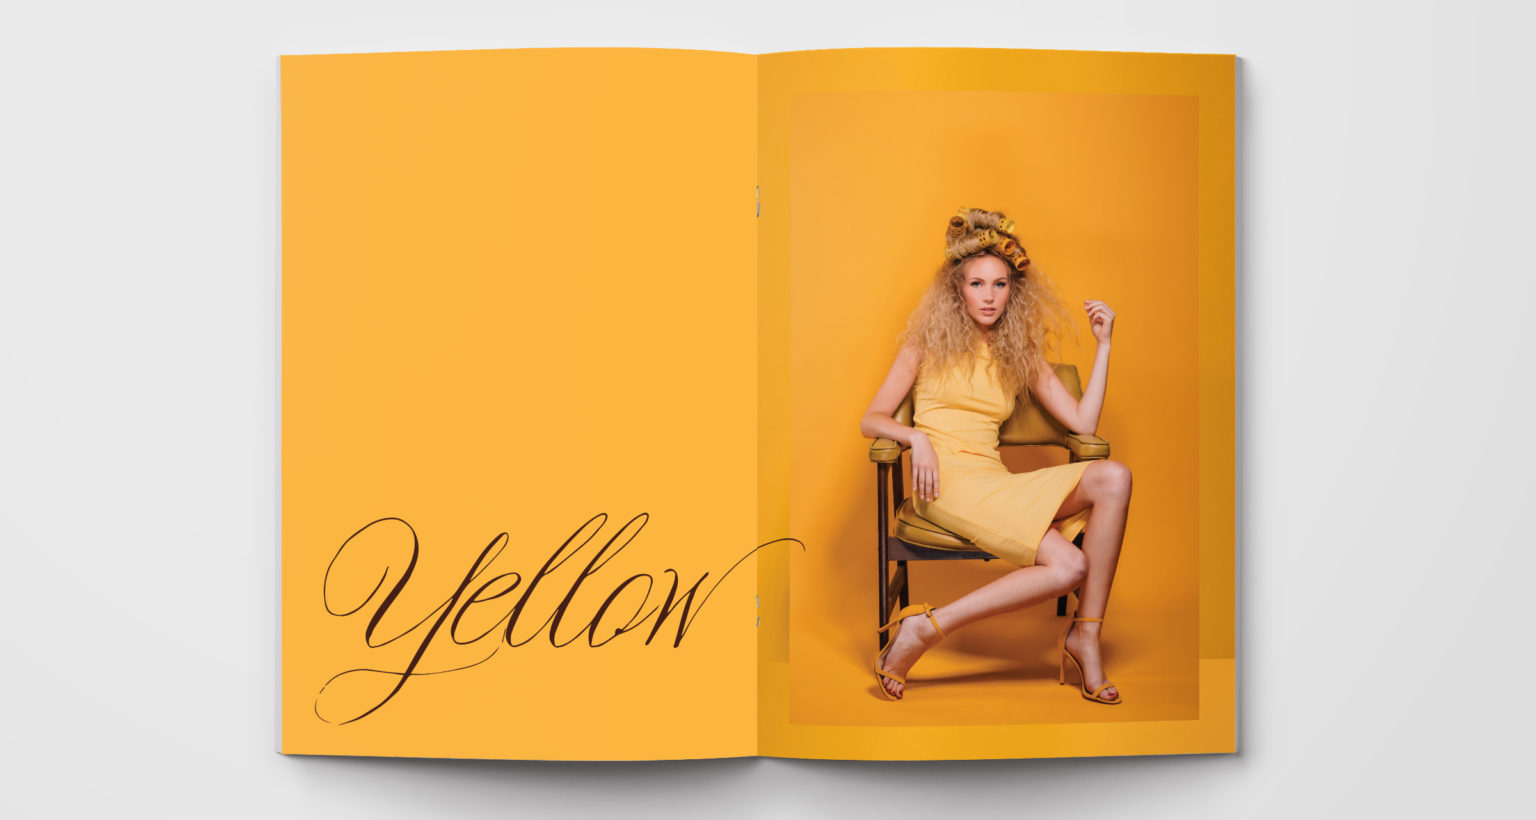 color-series-ink-and-mortar-yellow-layout-1-1536x820.jpg